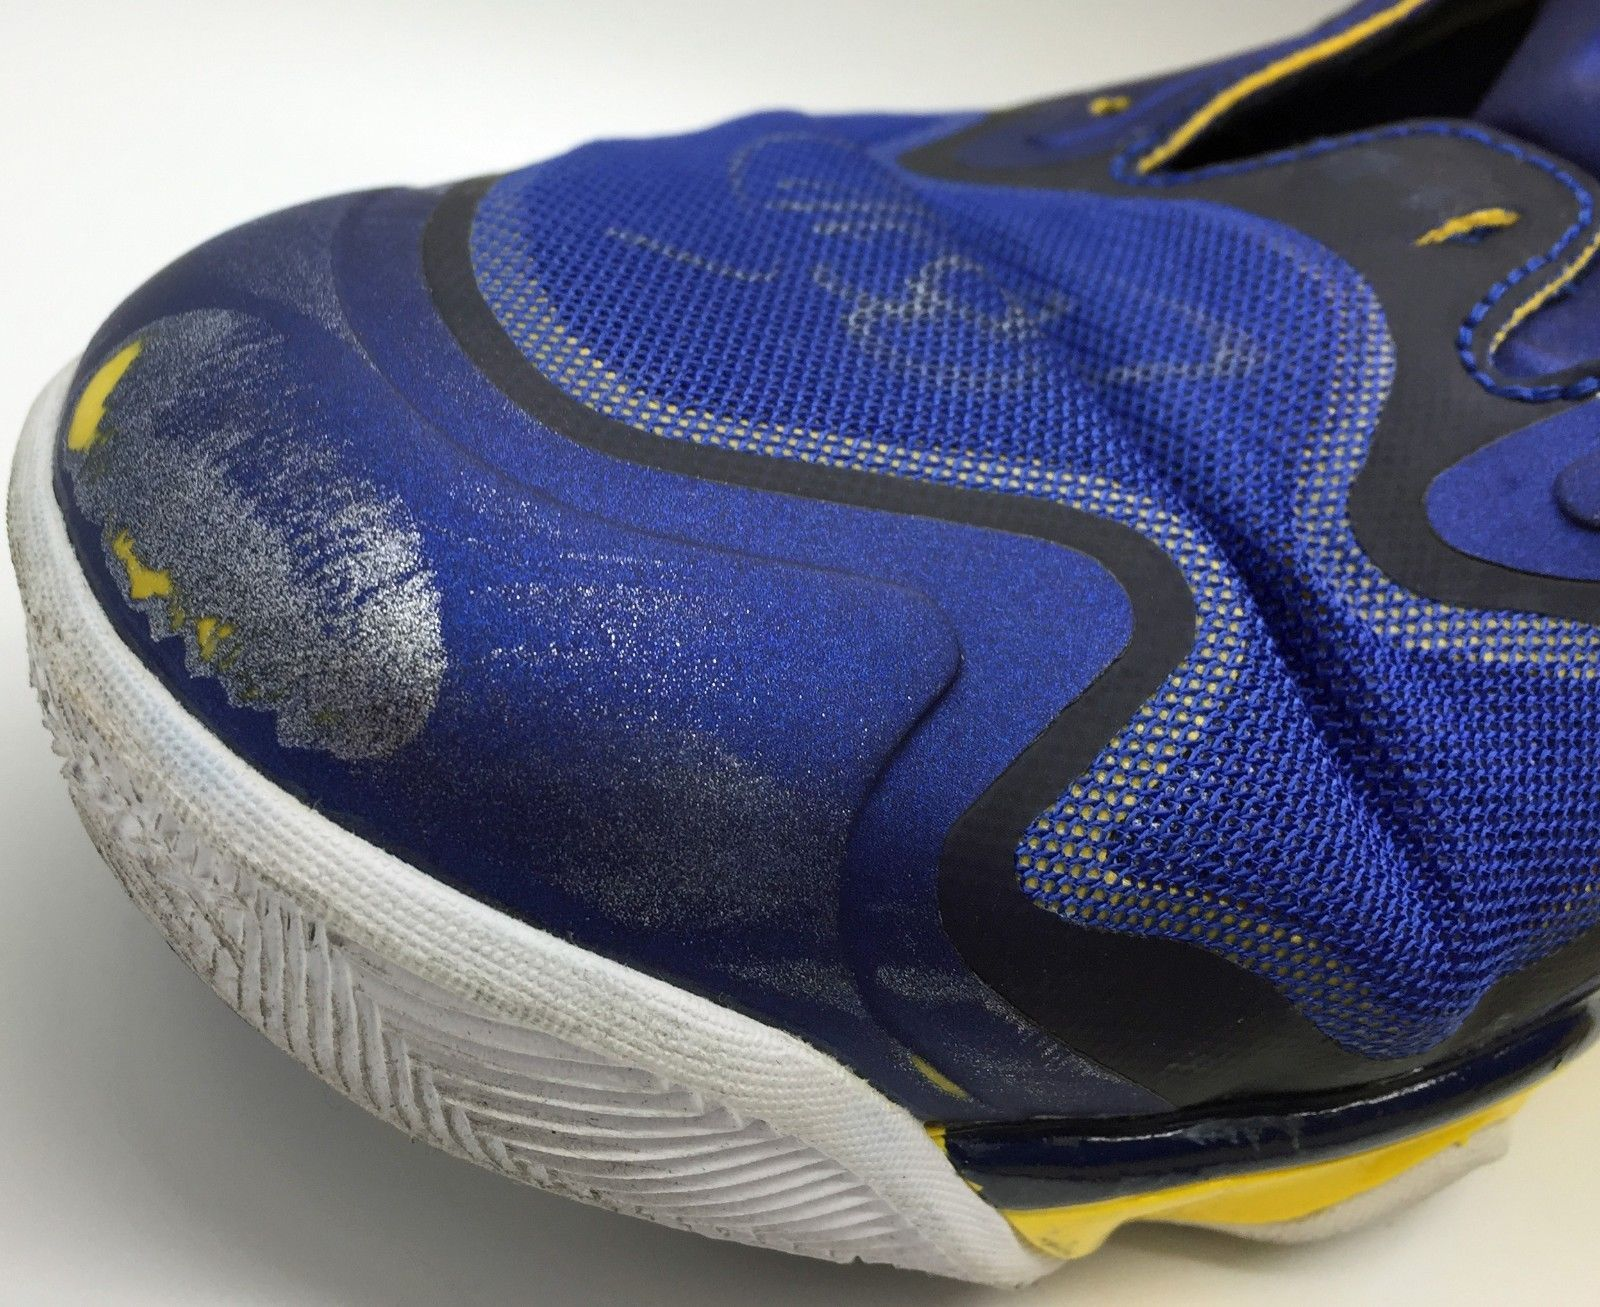 a0cf3c8ebf127 ... 2015 NBA Champion   MVP Steph Curry Game Used   Signed 2013 Sneakers w   Photo ...